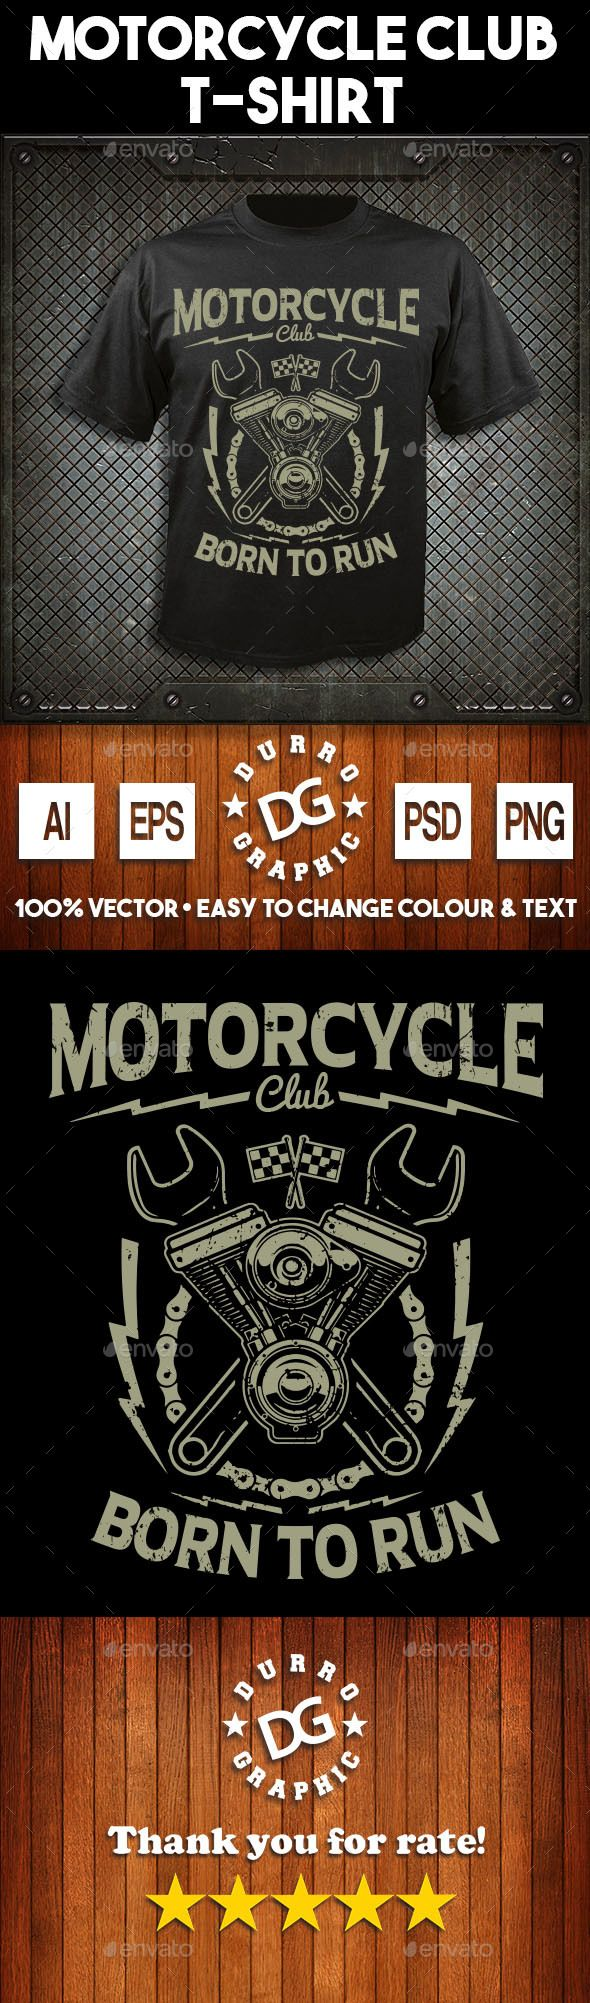 145 Best Western Images On Pinterest Laptop Skin Typographic X8 Kendrick T Shirt Size M Motorcycle Club Design